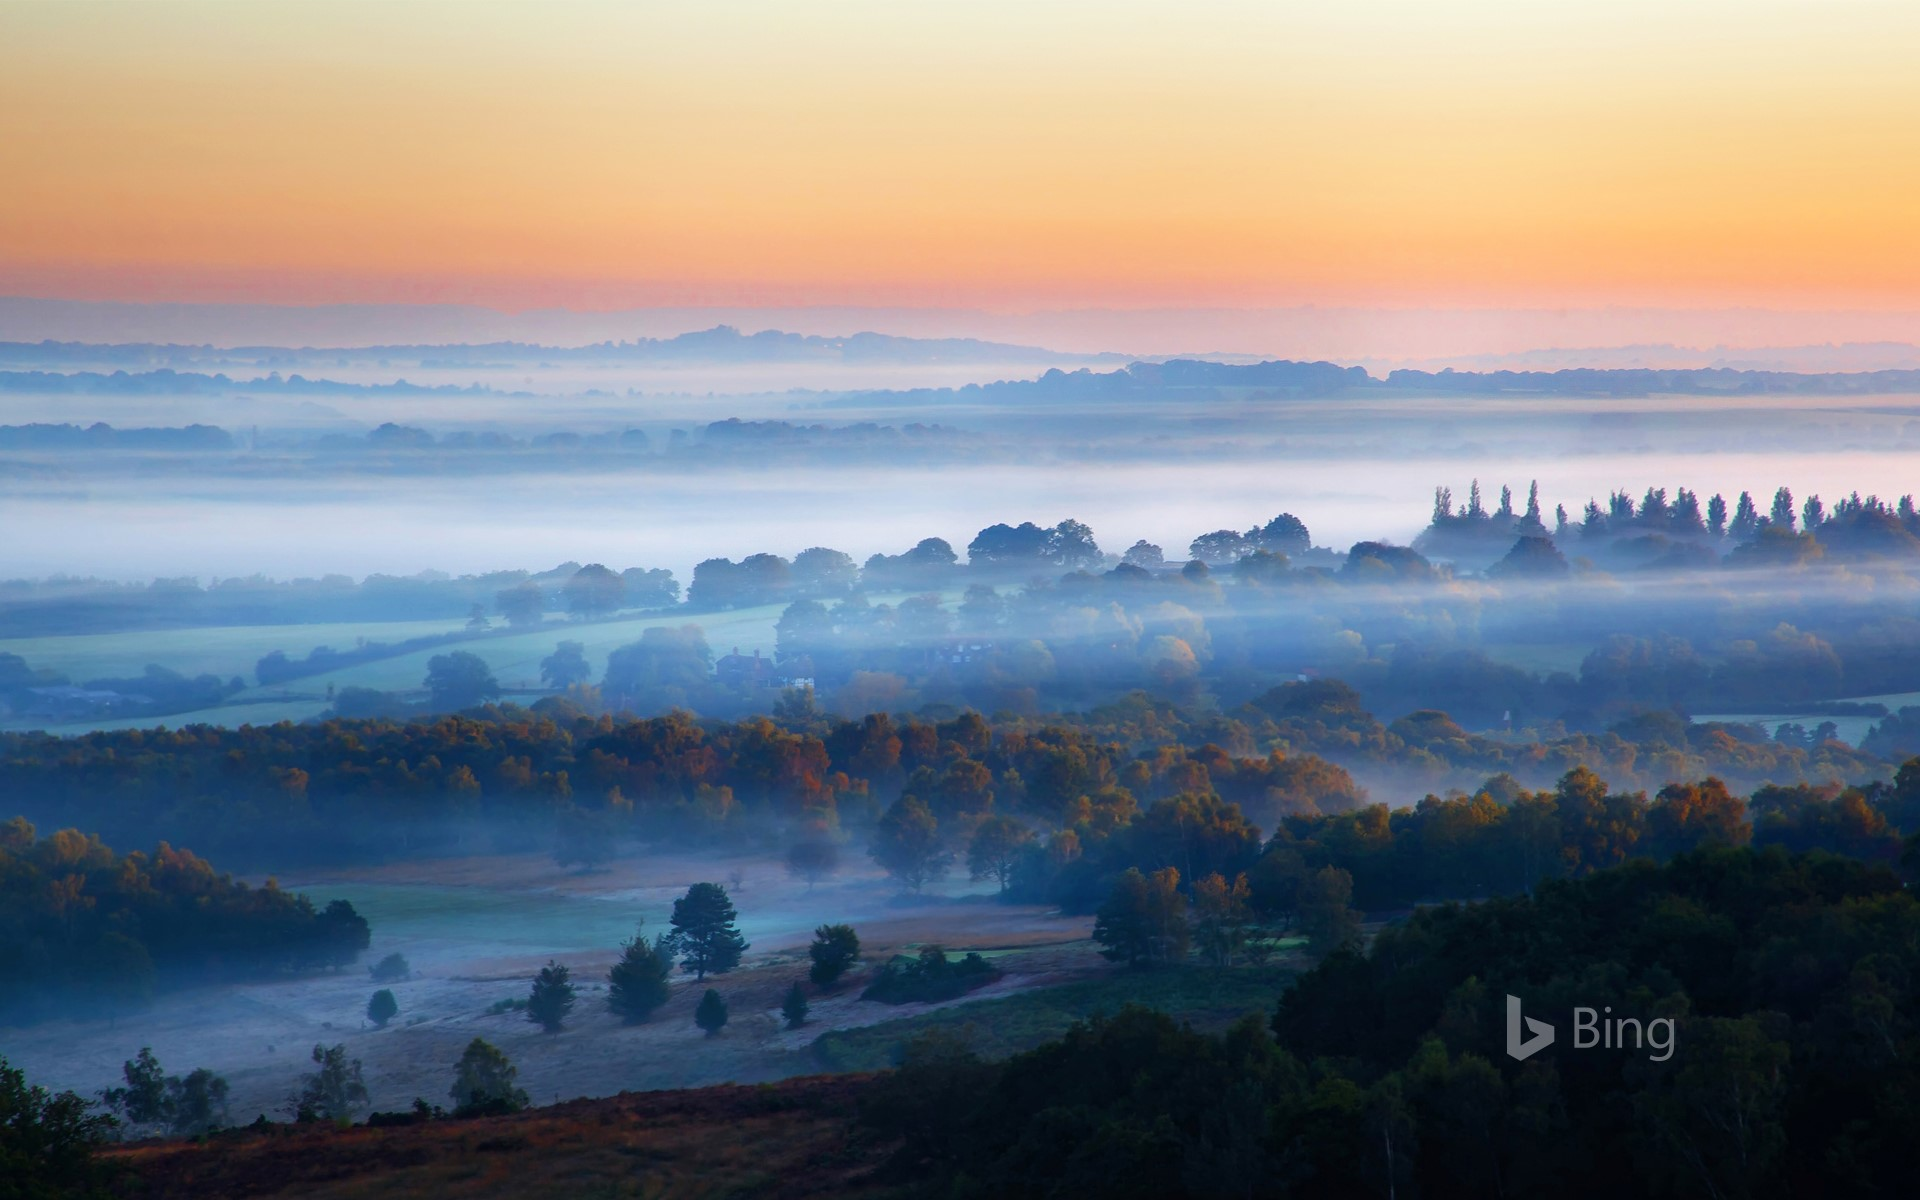 Misty sunrise in Ashdown Forest, East Sussex